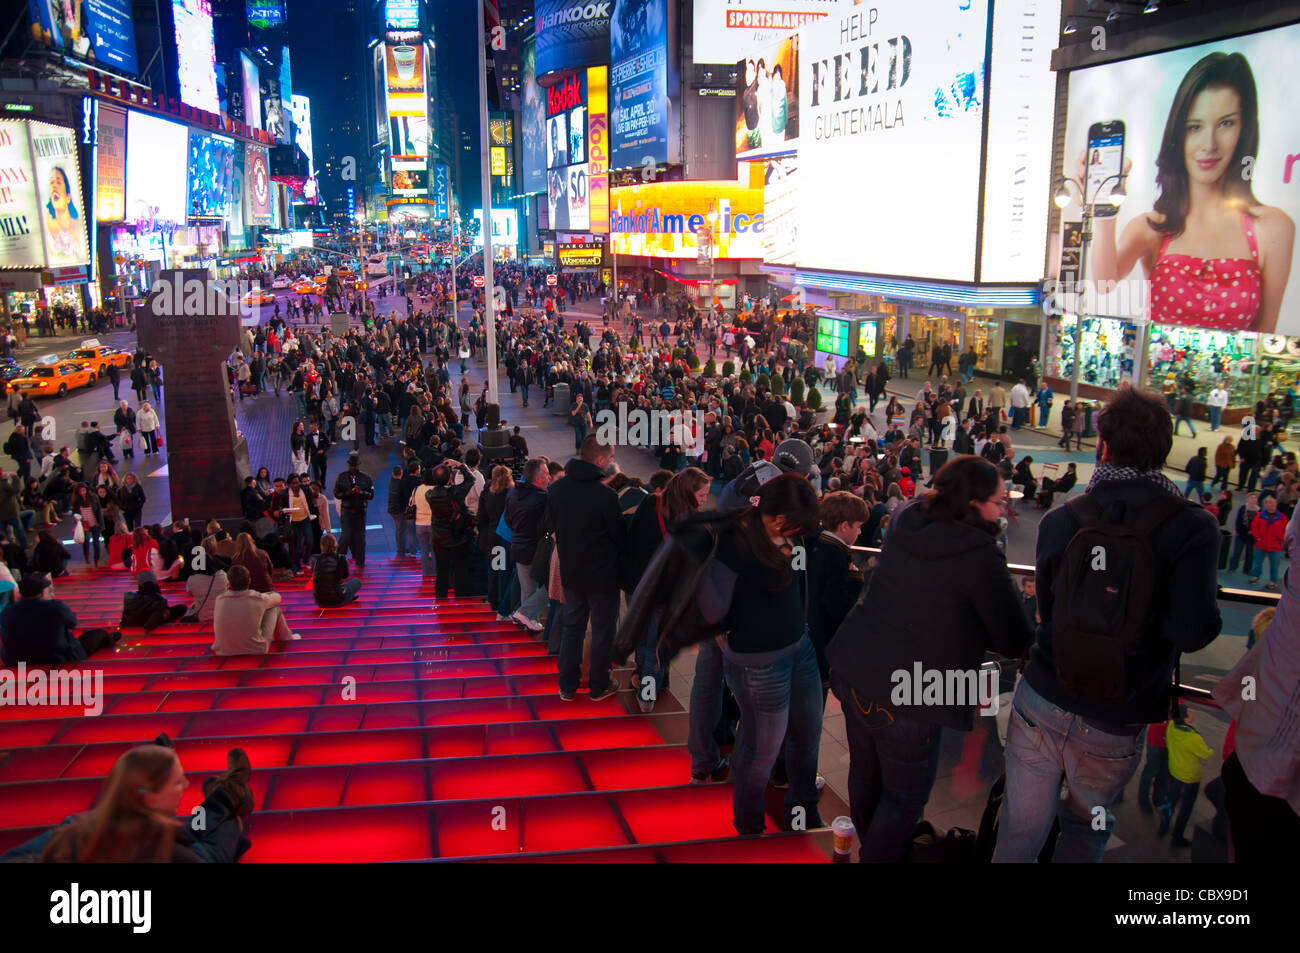 Times Square panorama from the height of red stairs of Duffy Square, New York City, USA Stock Photo